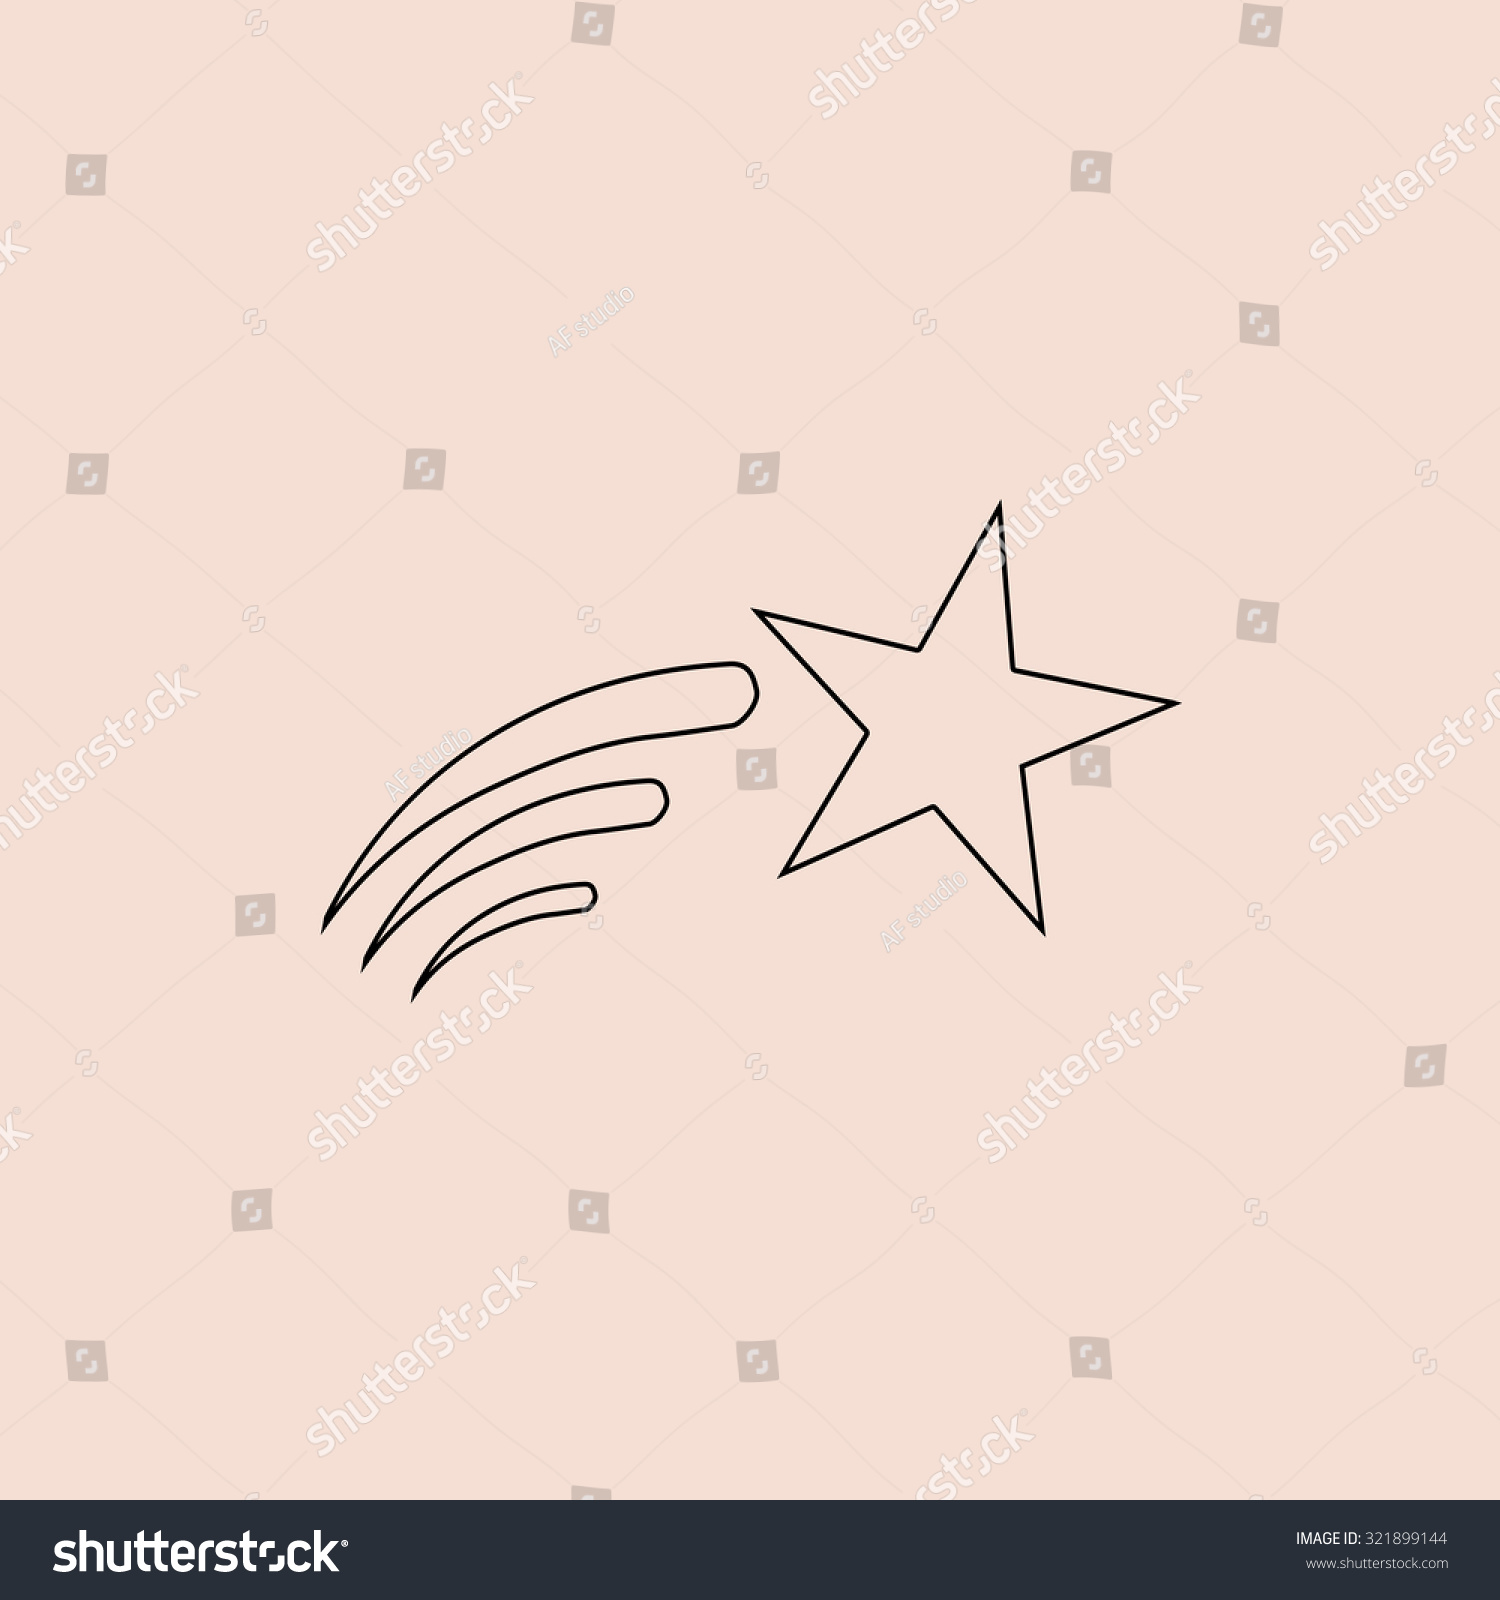 Shooting star outline icon simple flat stock illustration shooting star outline icon simple flat pictogram on pink background sciox Images